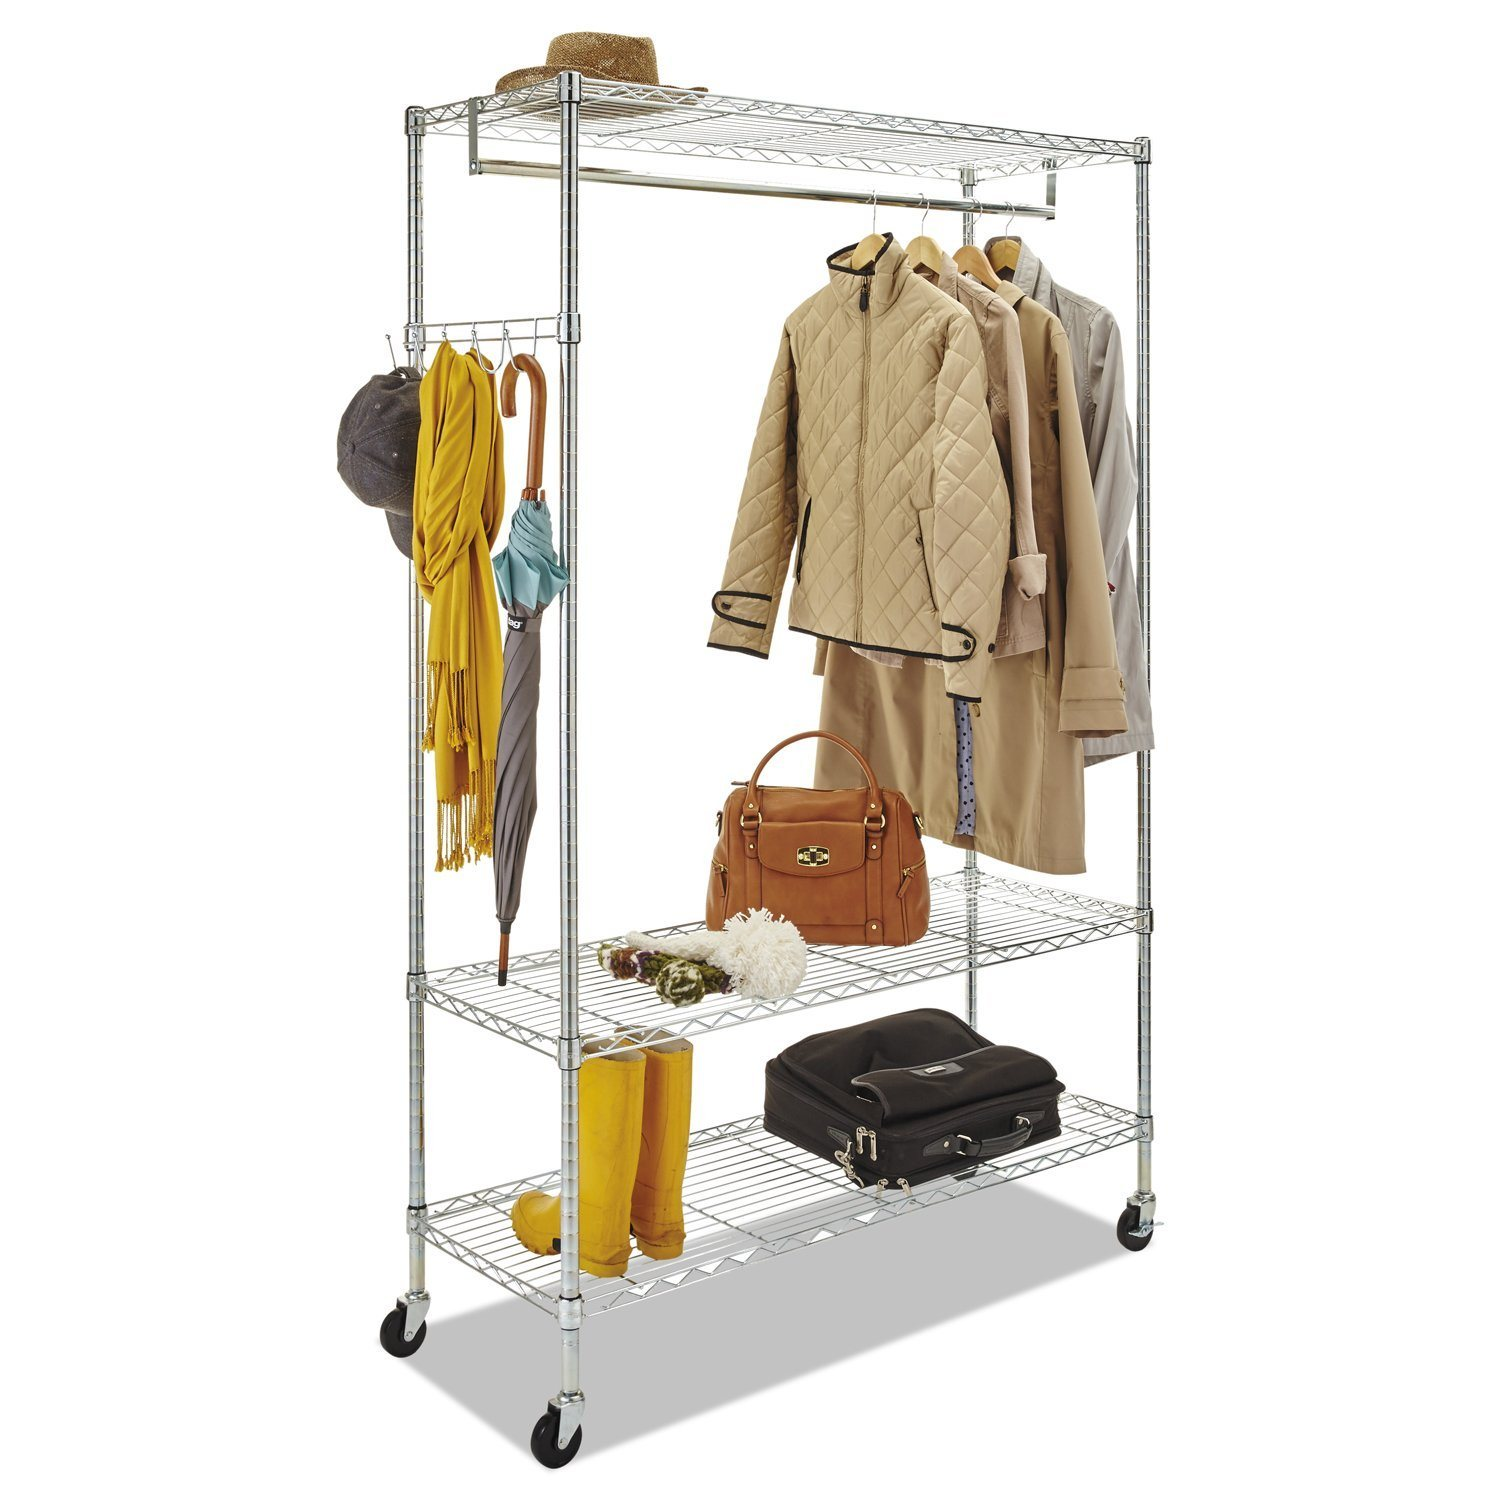 Hot Item Cheap Price 3 Tiers Adjustable Chrome Metal Garment Hanger Closet Wire Shelving Rack